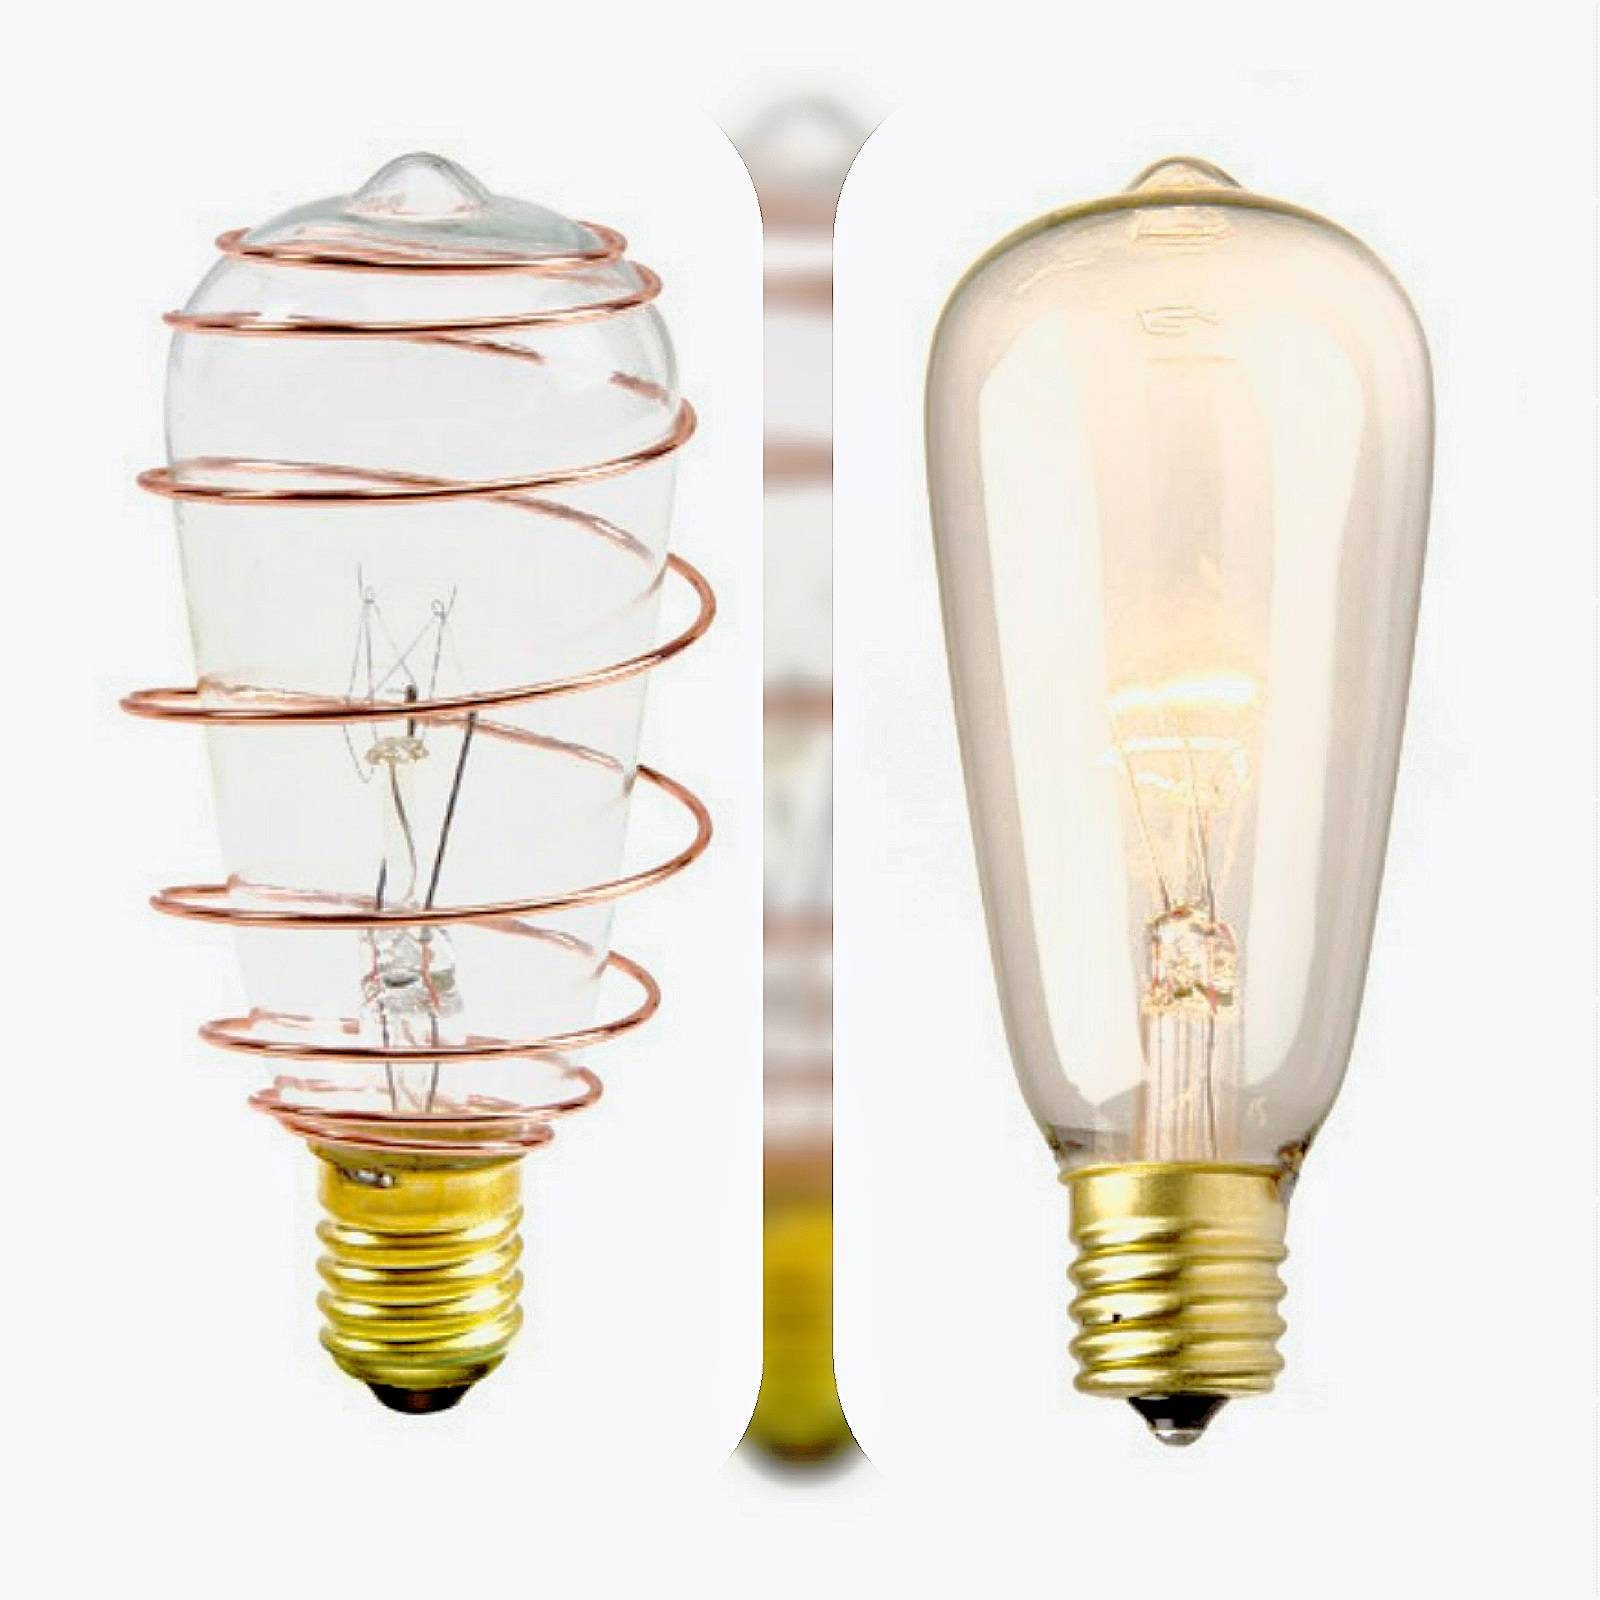 E12 edison bulb replacement bulbs for string lights indoor outdoor light bulbs industrial lighting hanging light